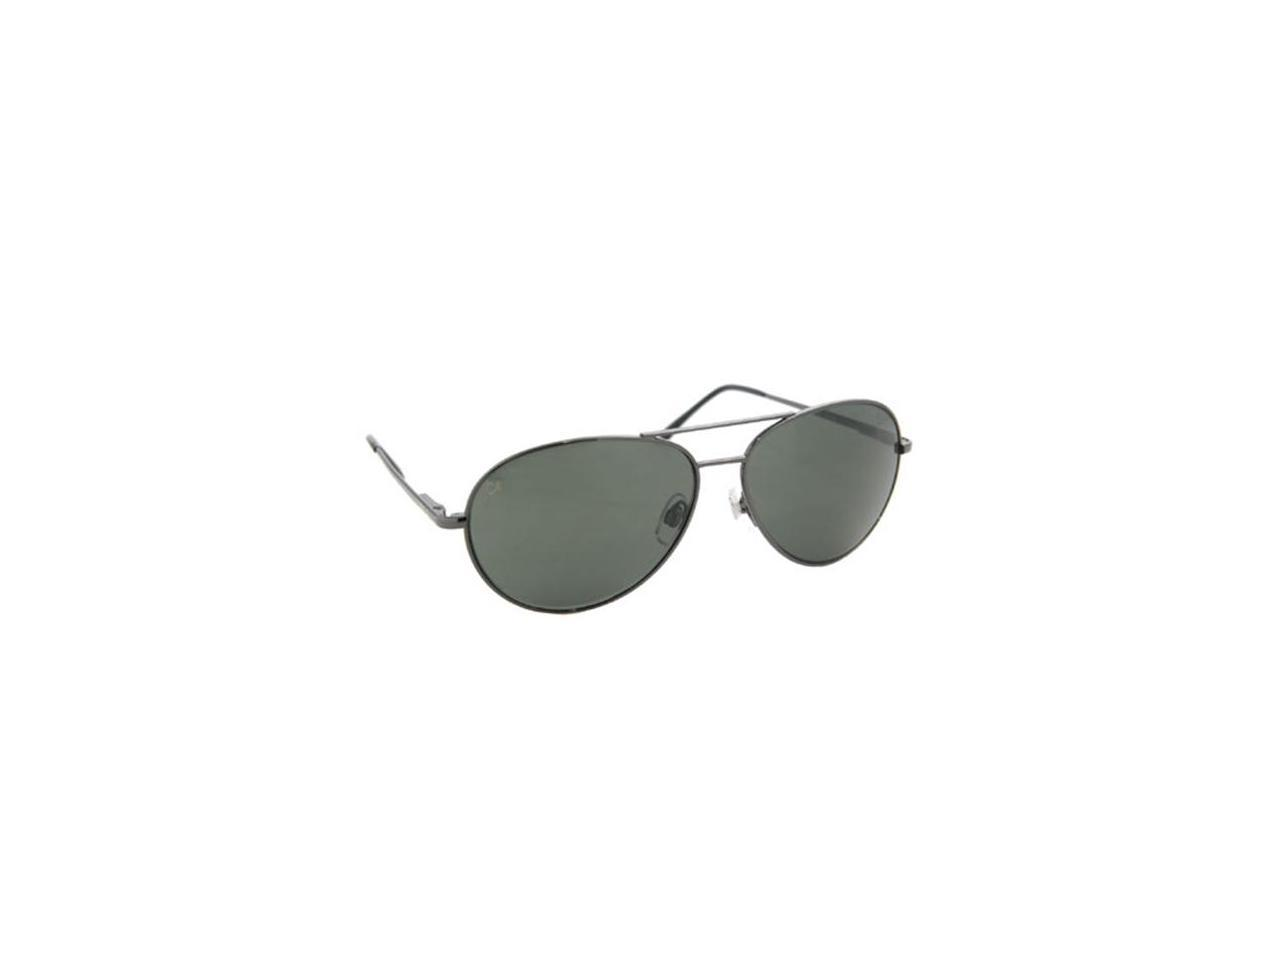 Polarized Sunglasses - Coppermax 3708GPP GUN/SMOKE Aviator Polarized Sunglasses - Gunmetal - Smoke Lens